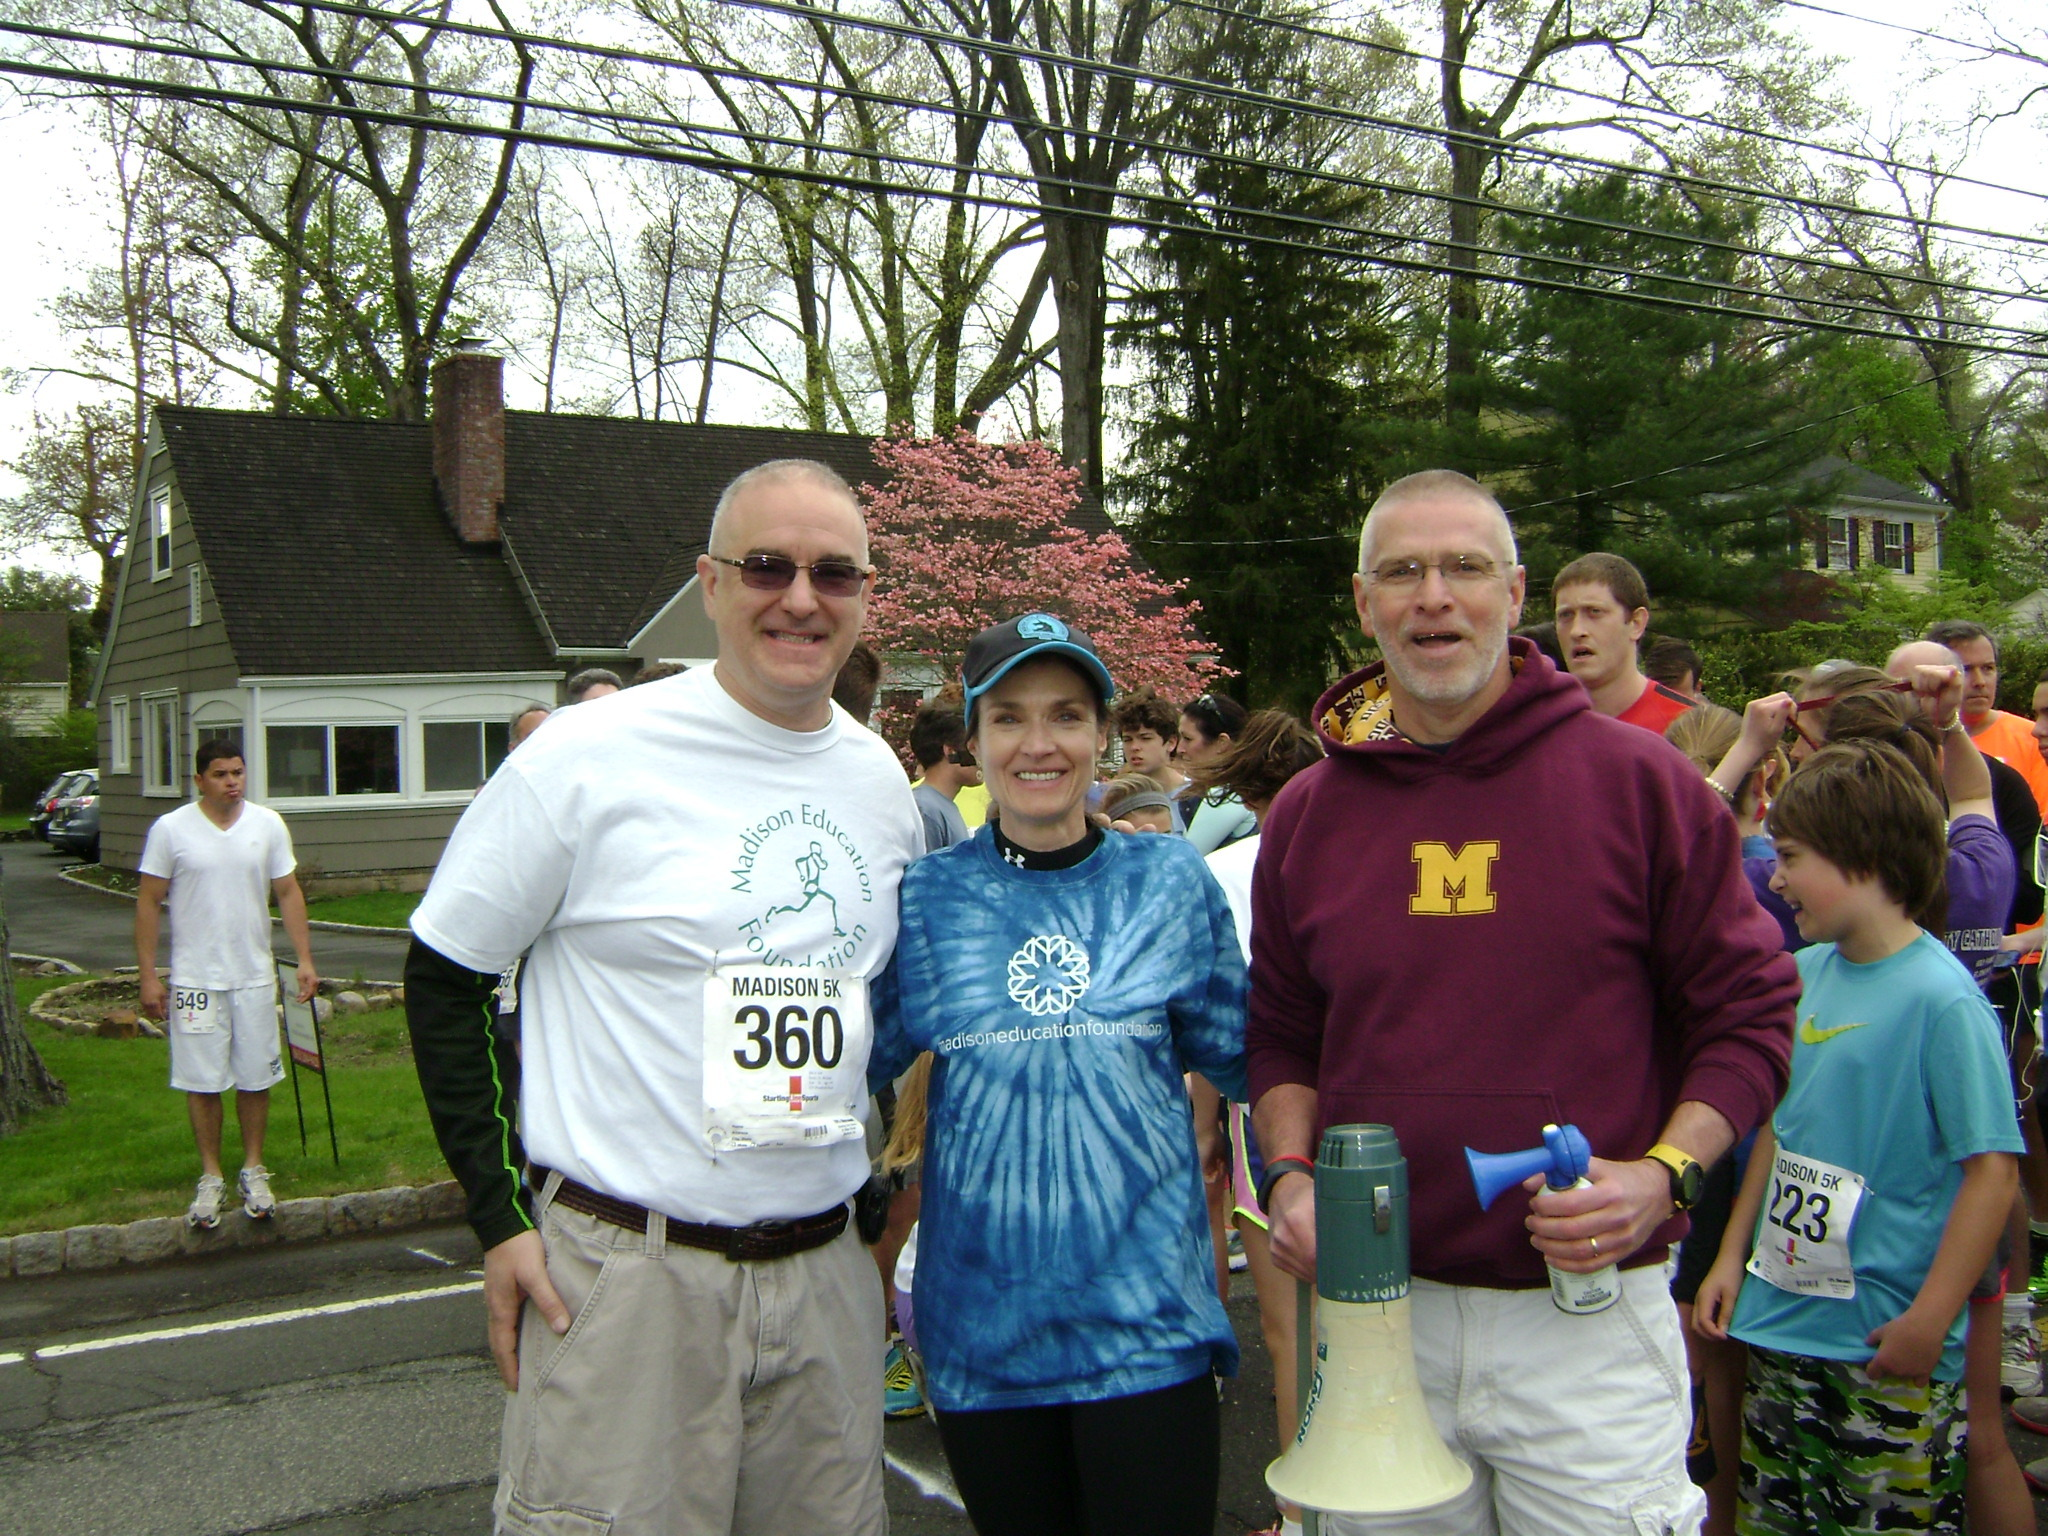 822977eaa450c8517a6c_5k_and_Fun_Run__1_.JPG